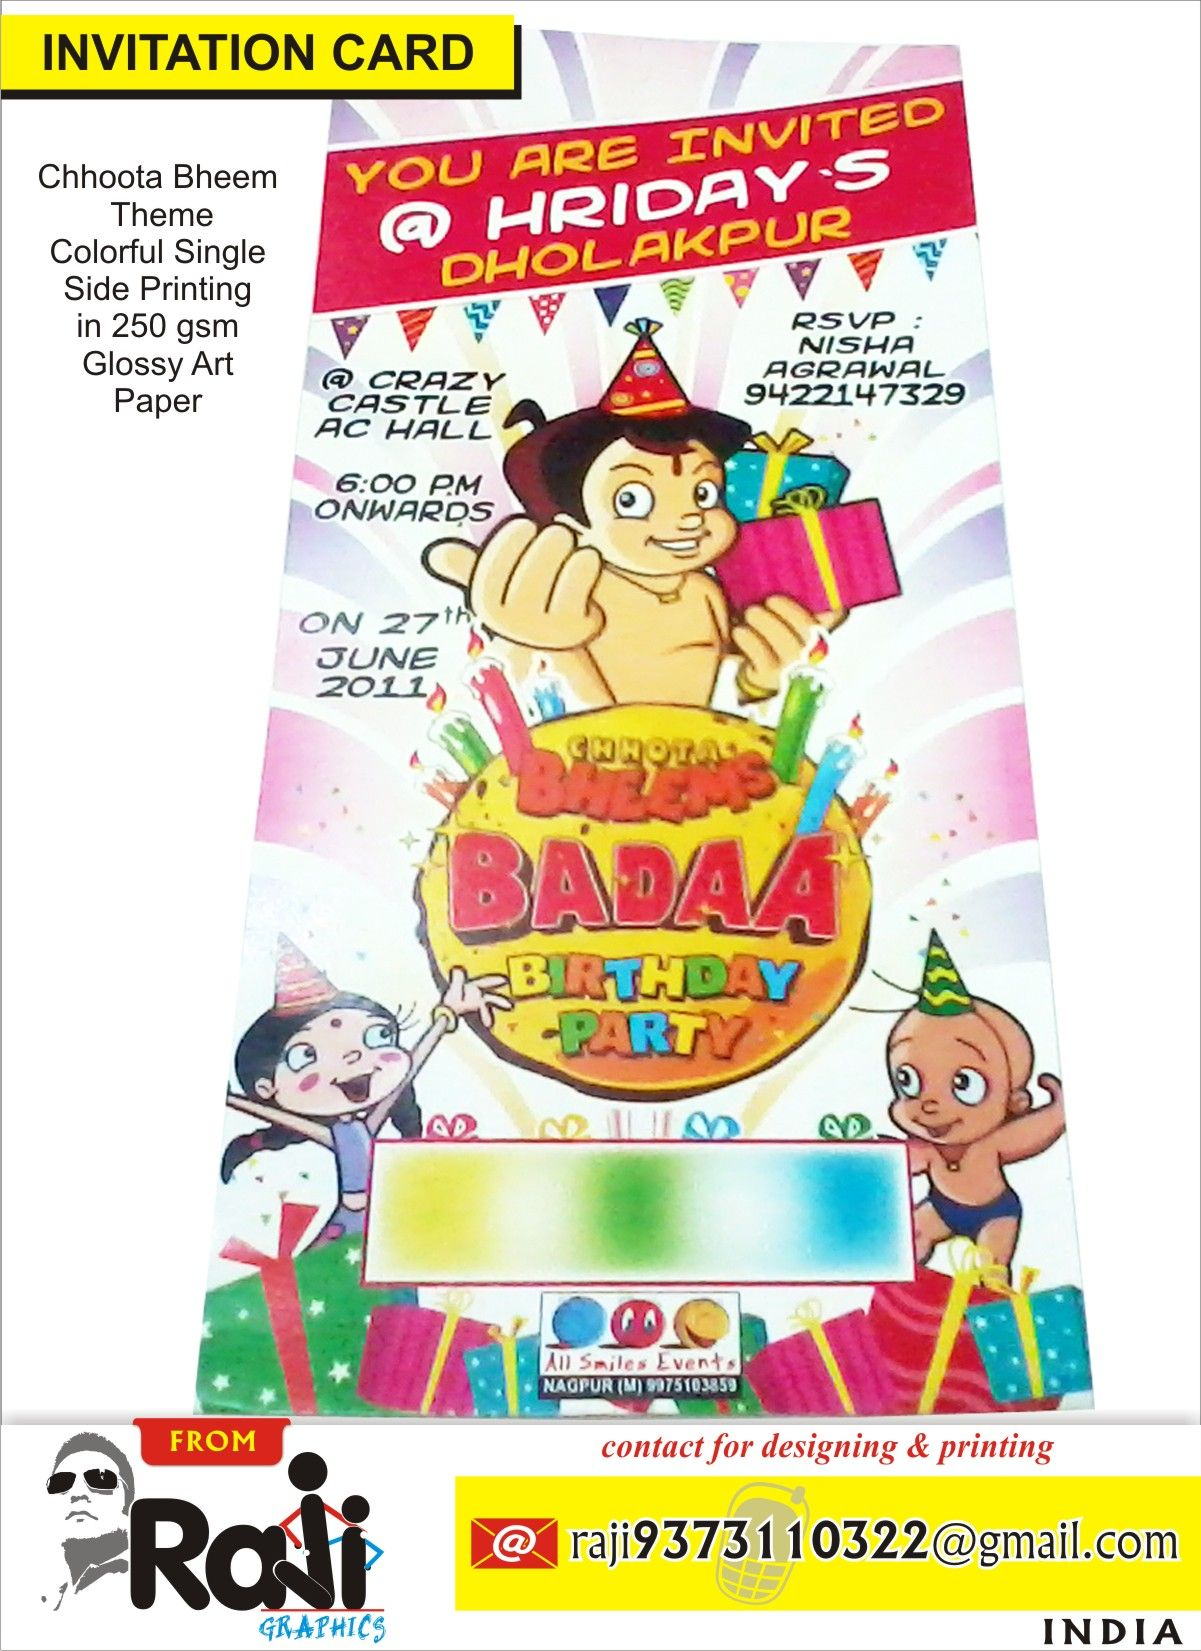 chhoota bheem birthday party invitation card design my designing